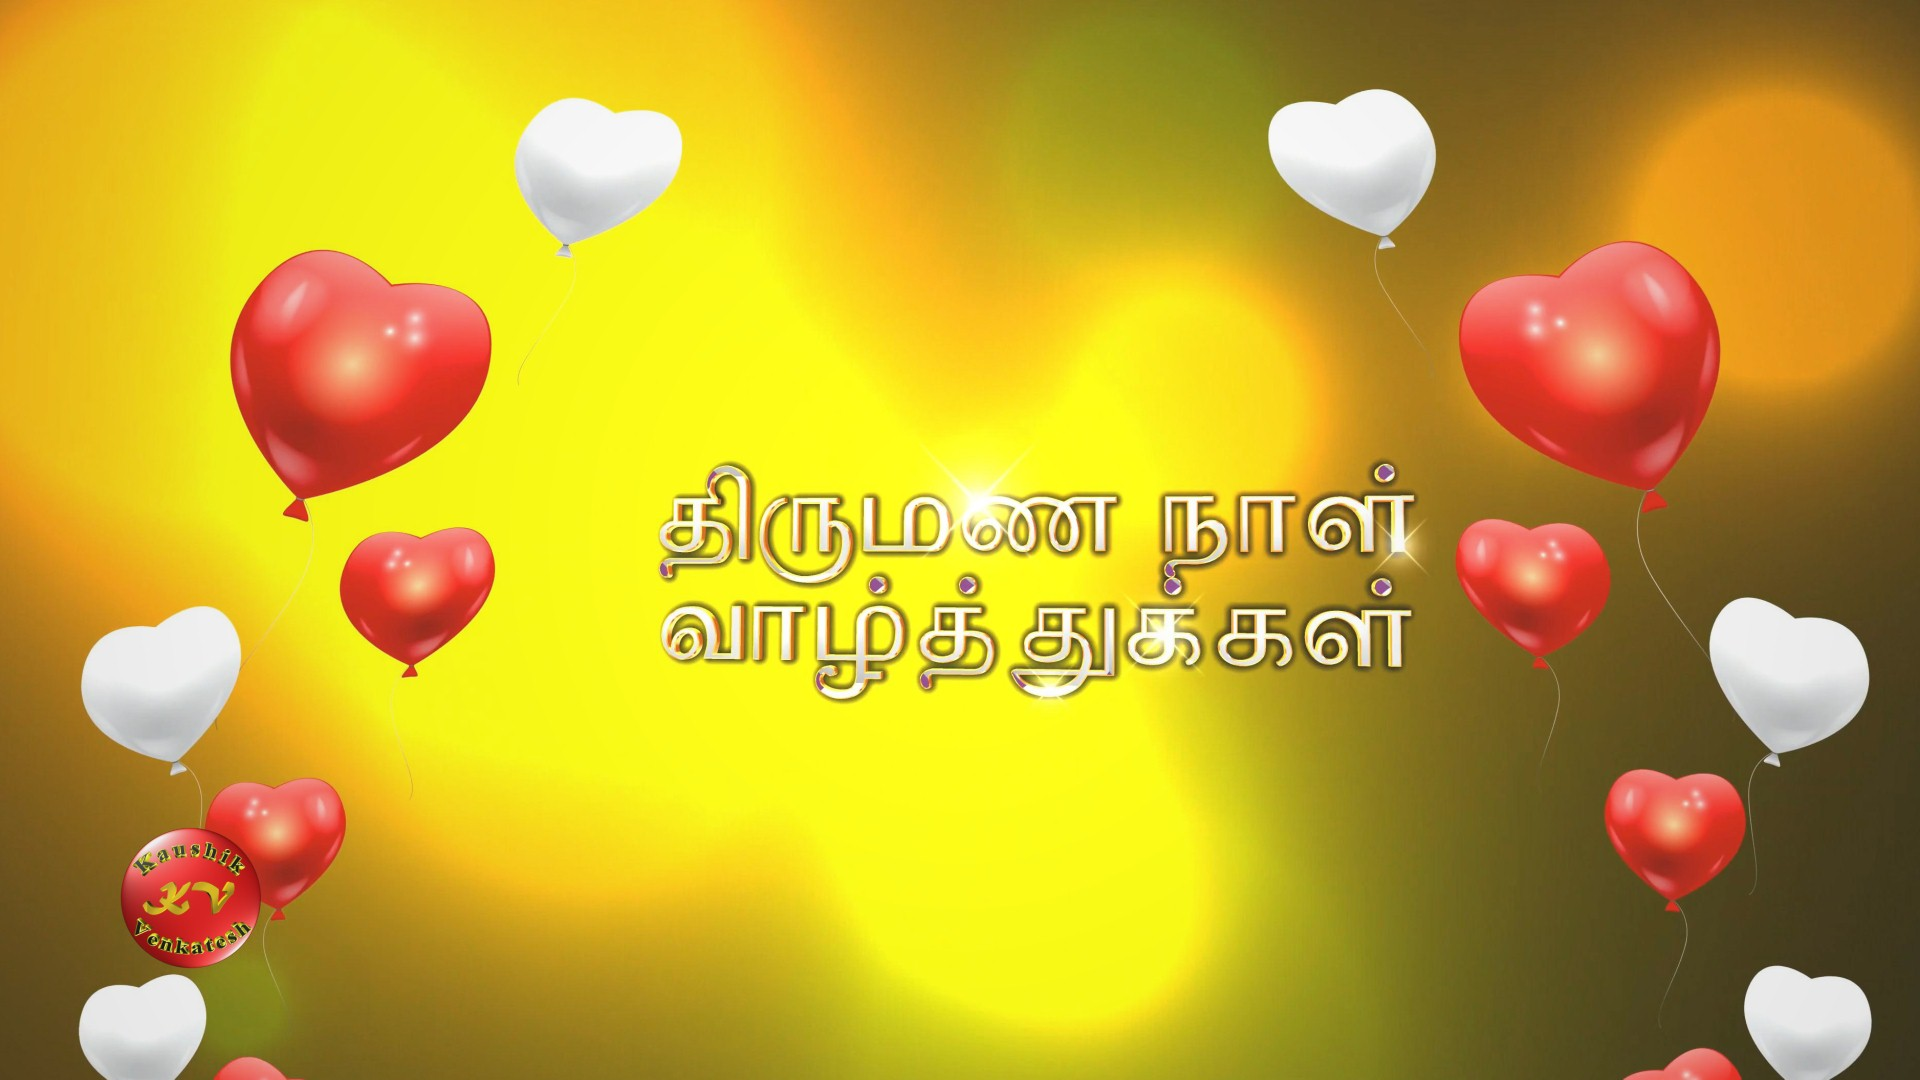 Greetings Image of Happy Wedding Anniversary Wishes in Tamil